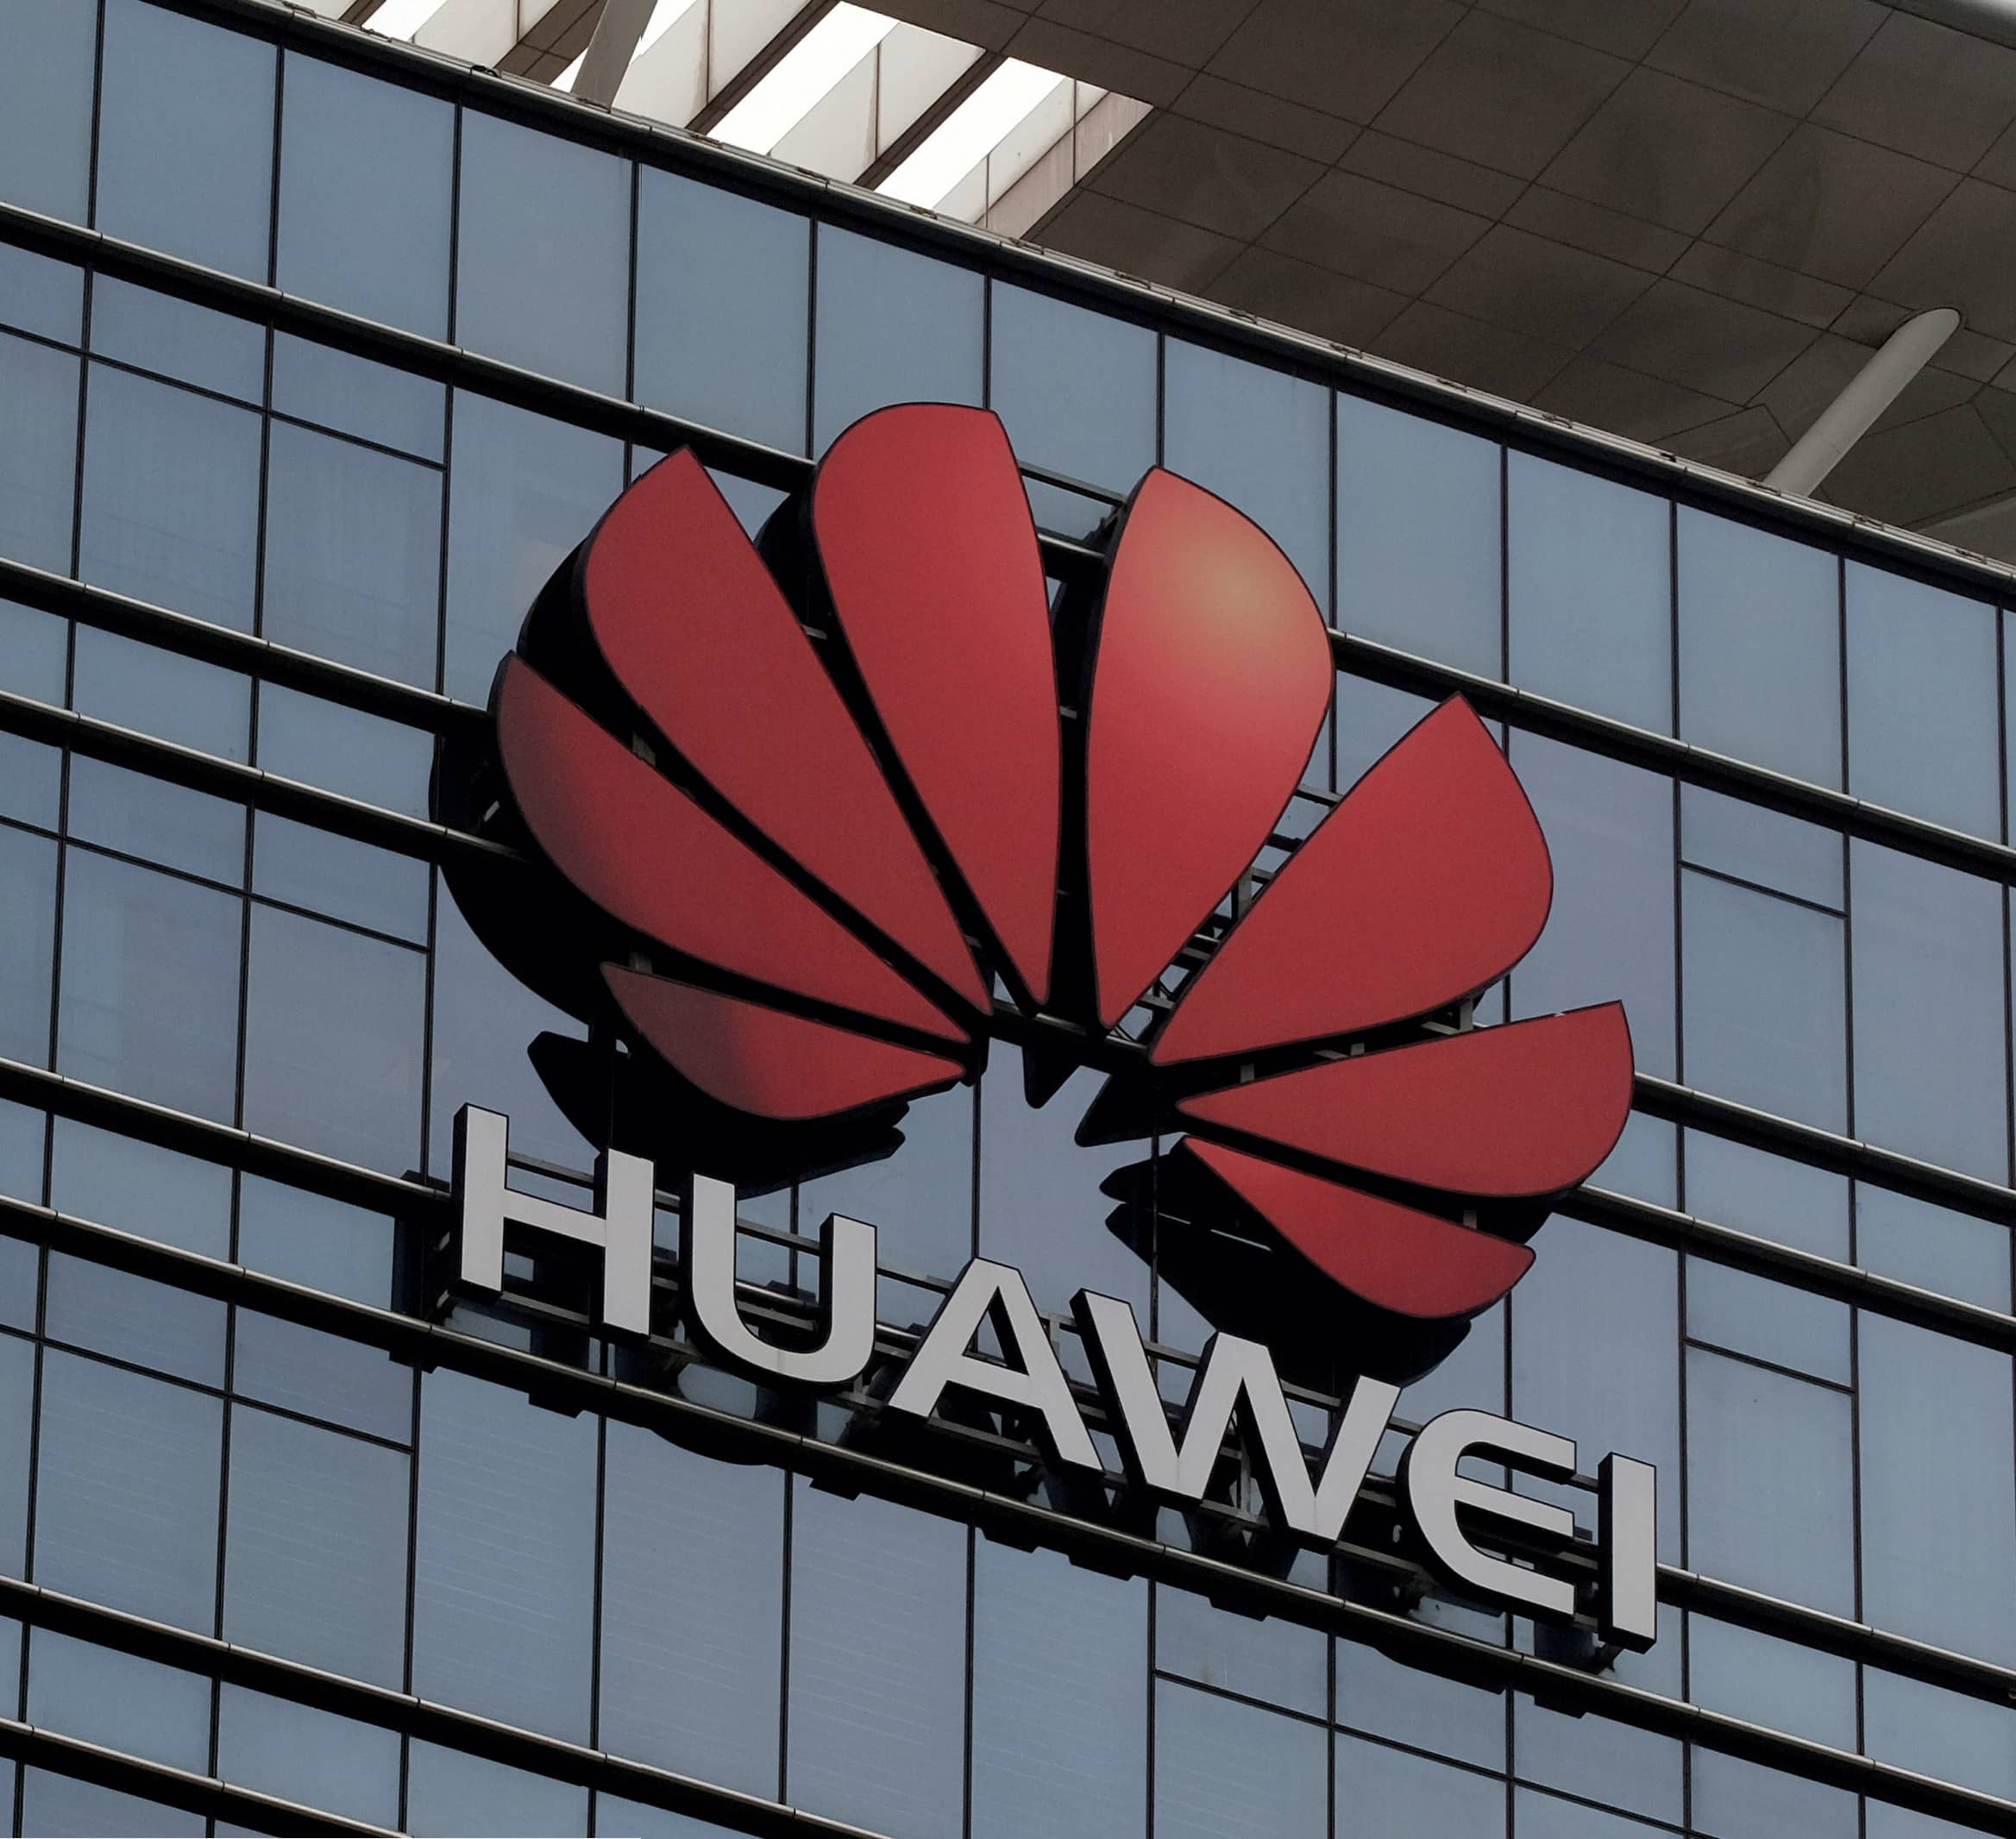 OFFICIAL: US MIGHT HELP OTHERS BUY NON-HUAWEI TELECOM GEAR